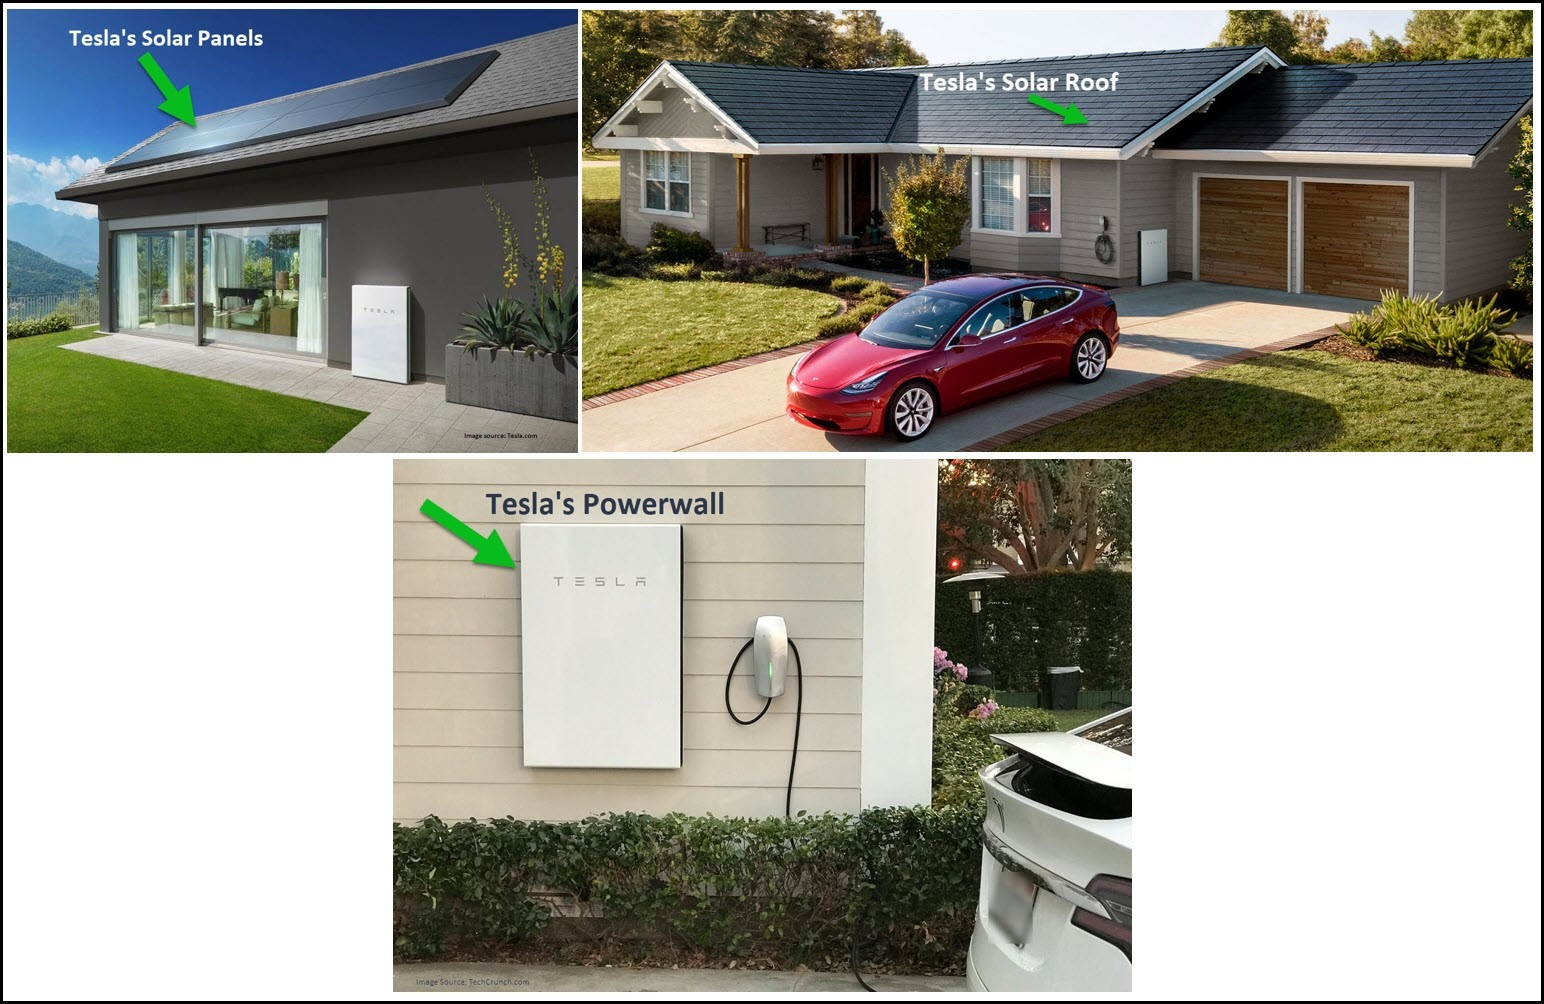 Tesla Solar Panels, Roof, Powerwall